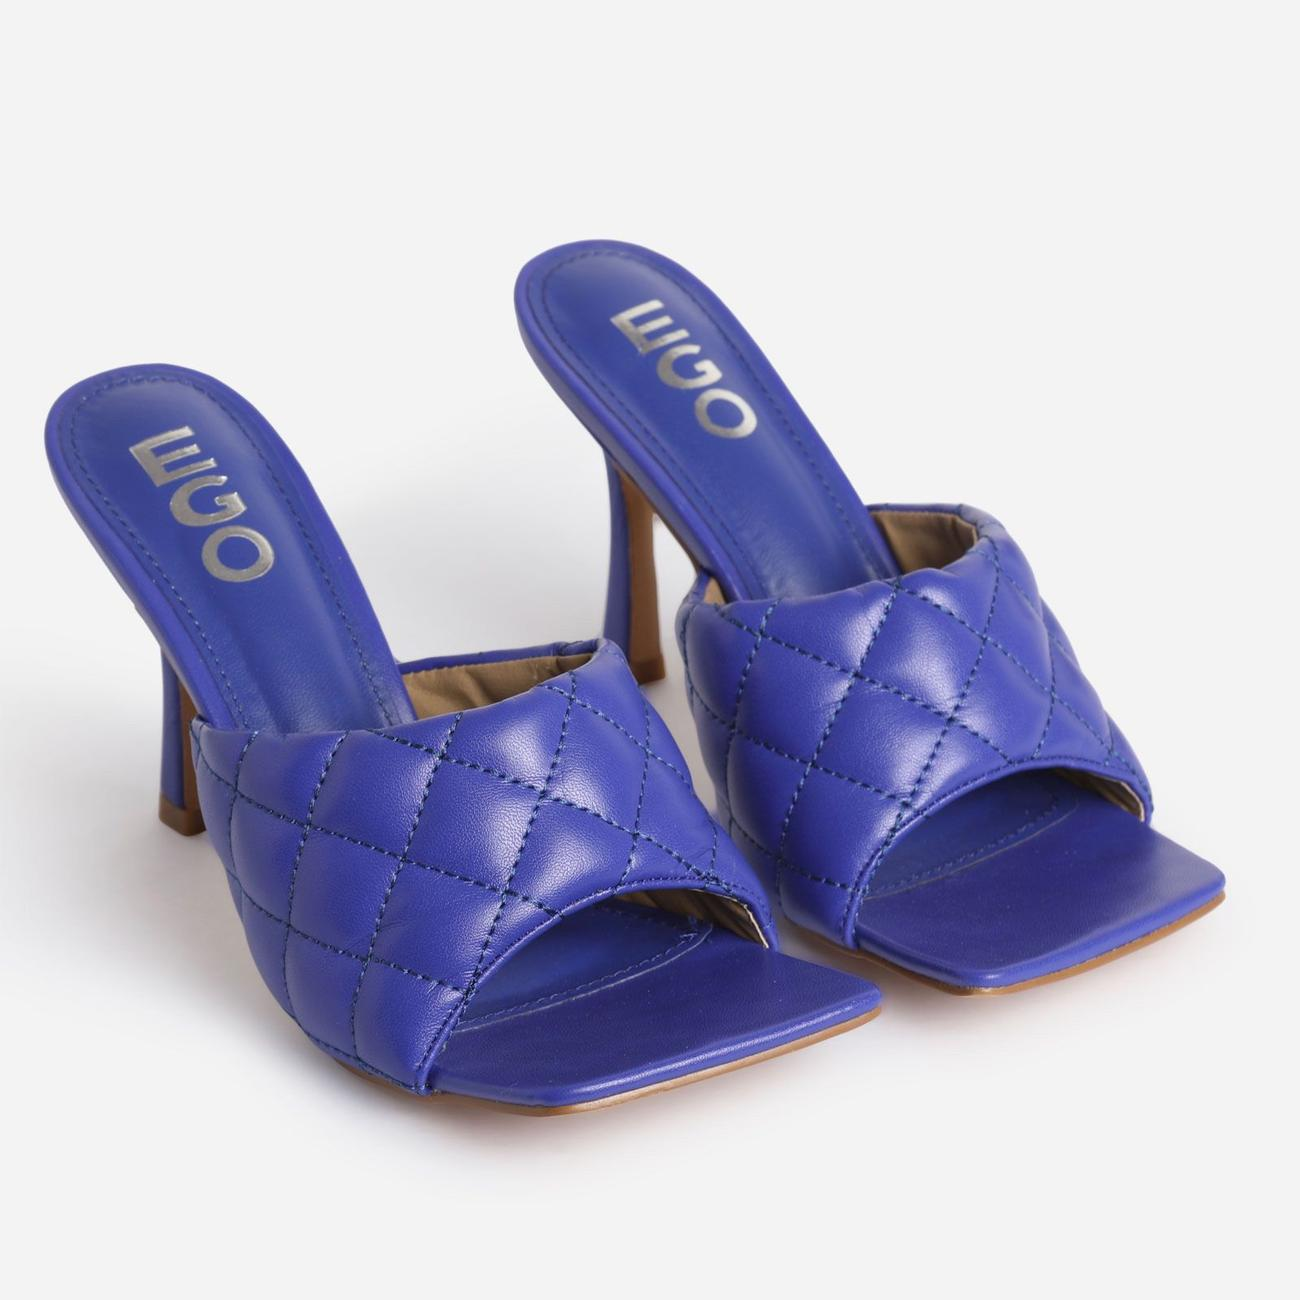 Tropez Square Toe Quilted Heel Mule In Purple Faux Leather Image 2